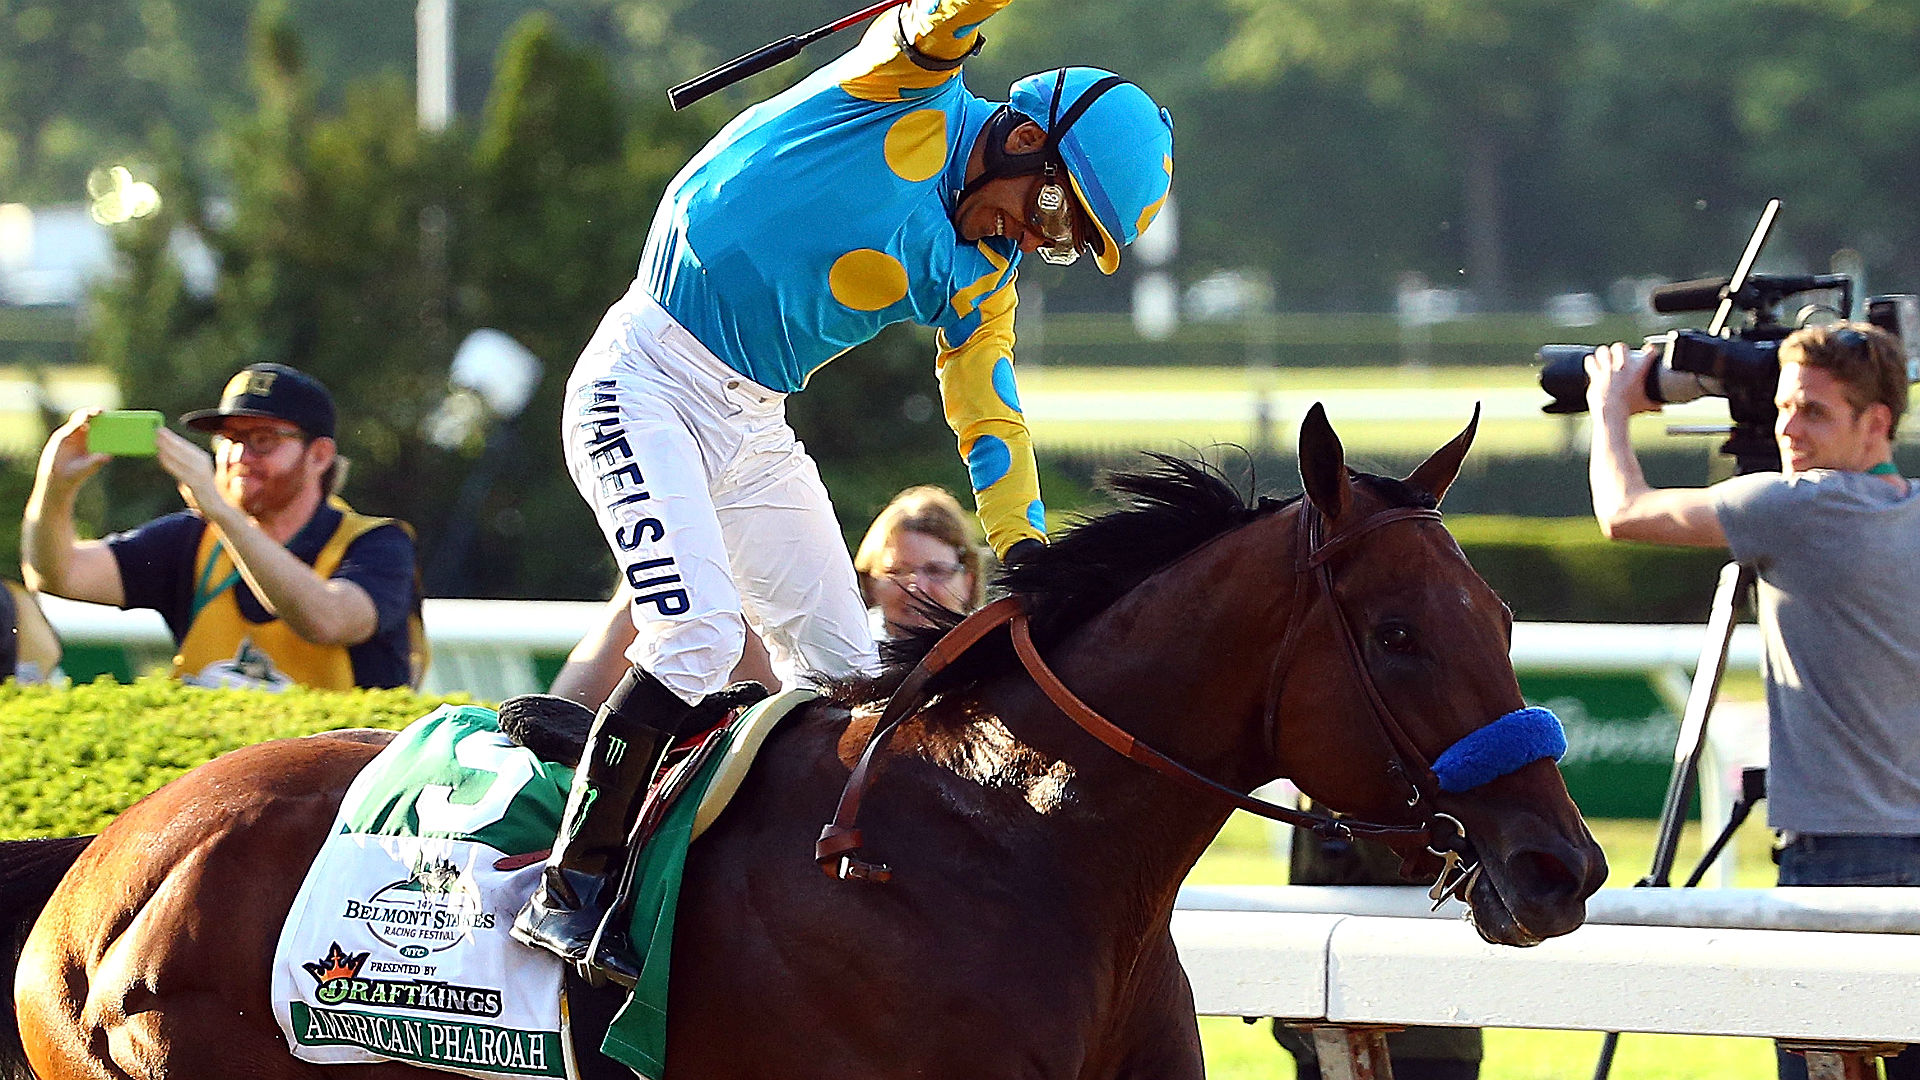 Haskell odds and post positions – American Pharoah installed as overwhelming favorite